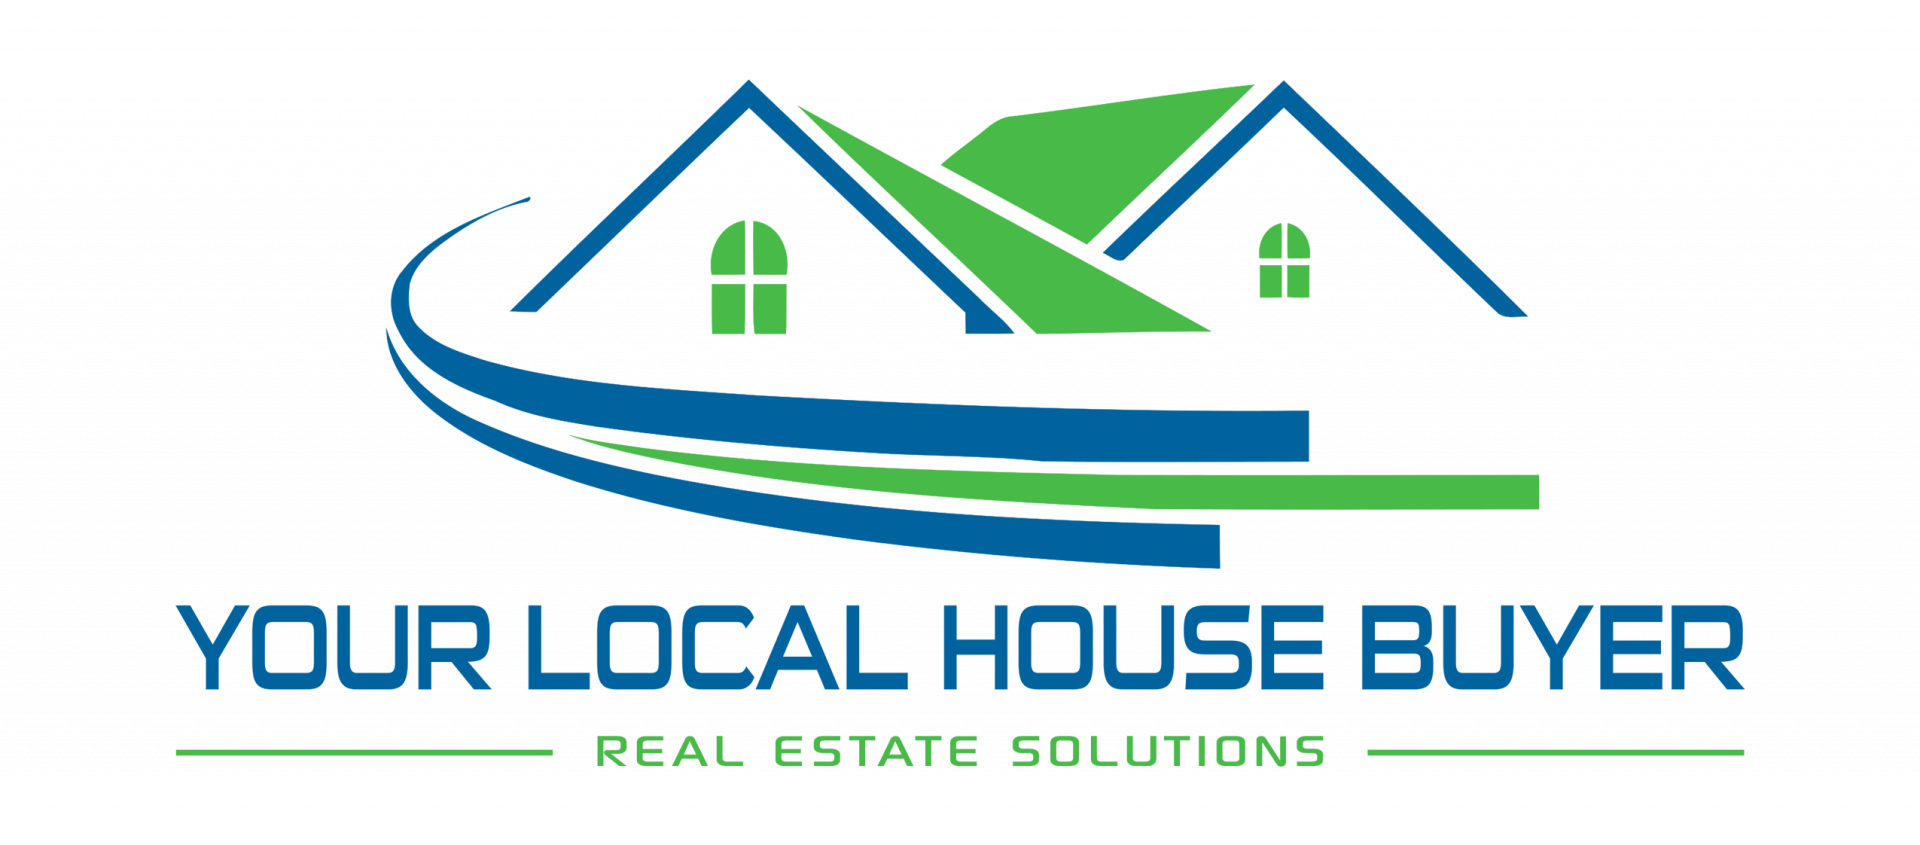 Your Local House Buyer logo